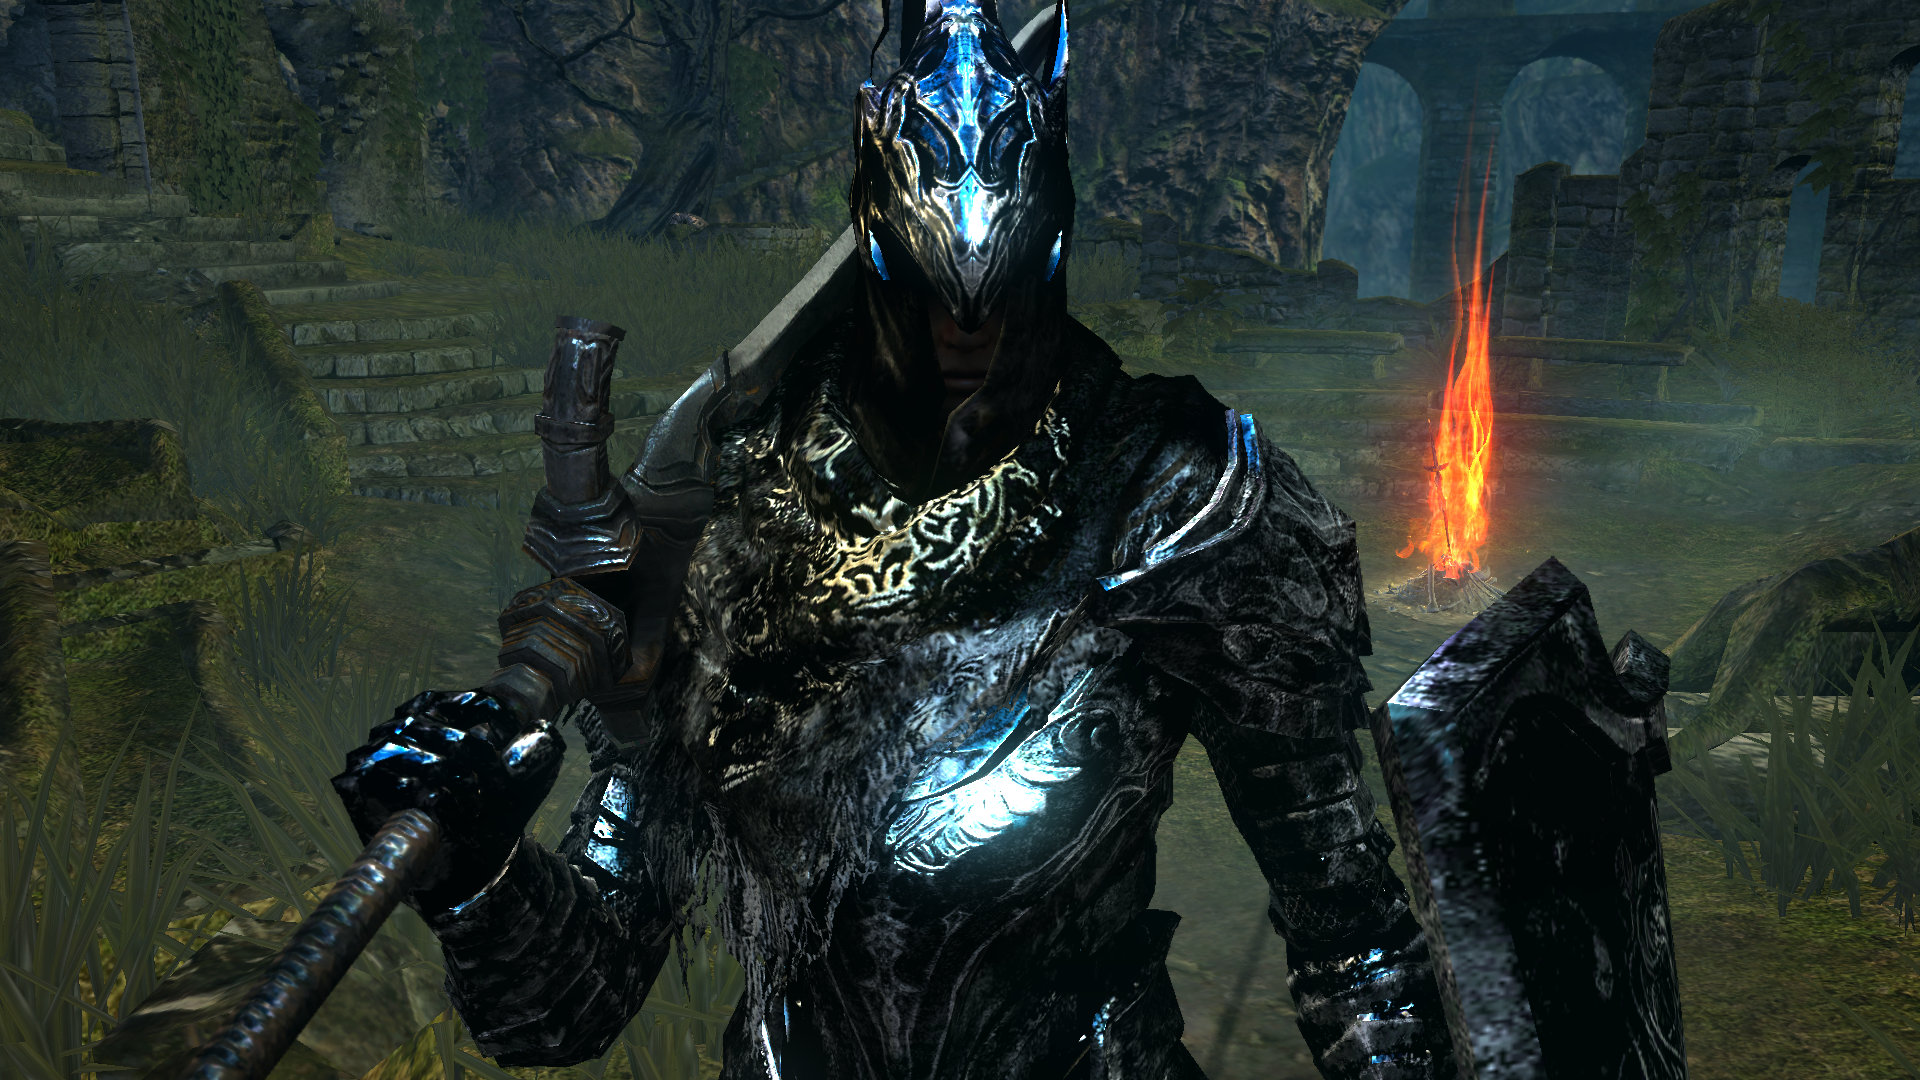 Ulitmate Dark Artorias at Dark Souls Nexus - mods and community